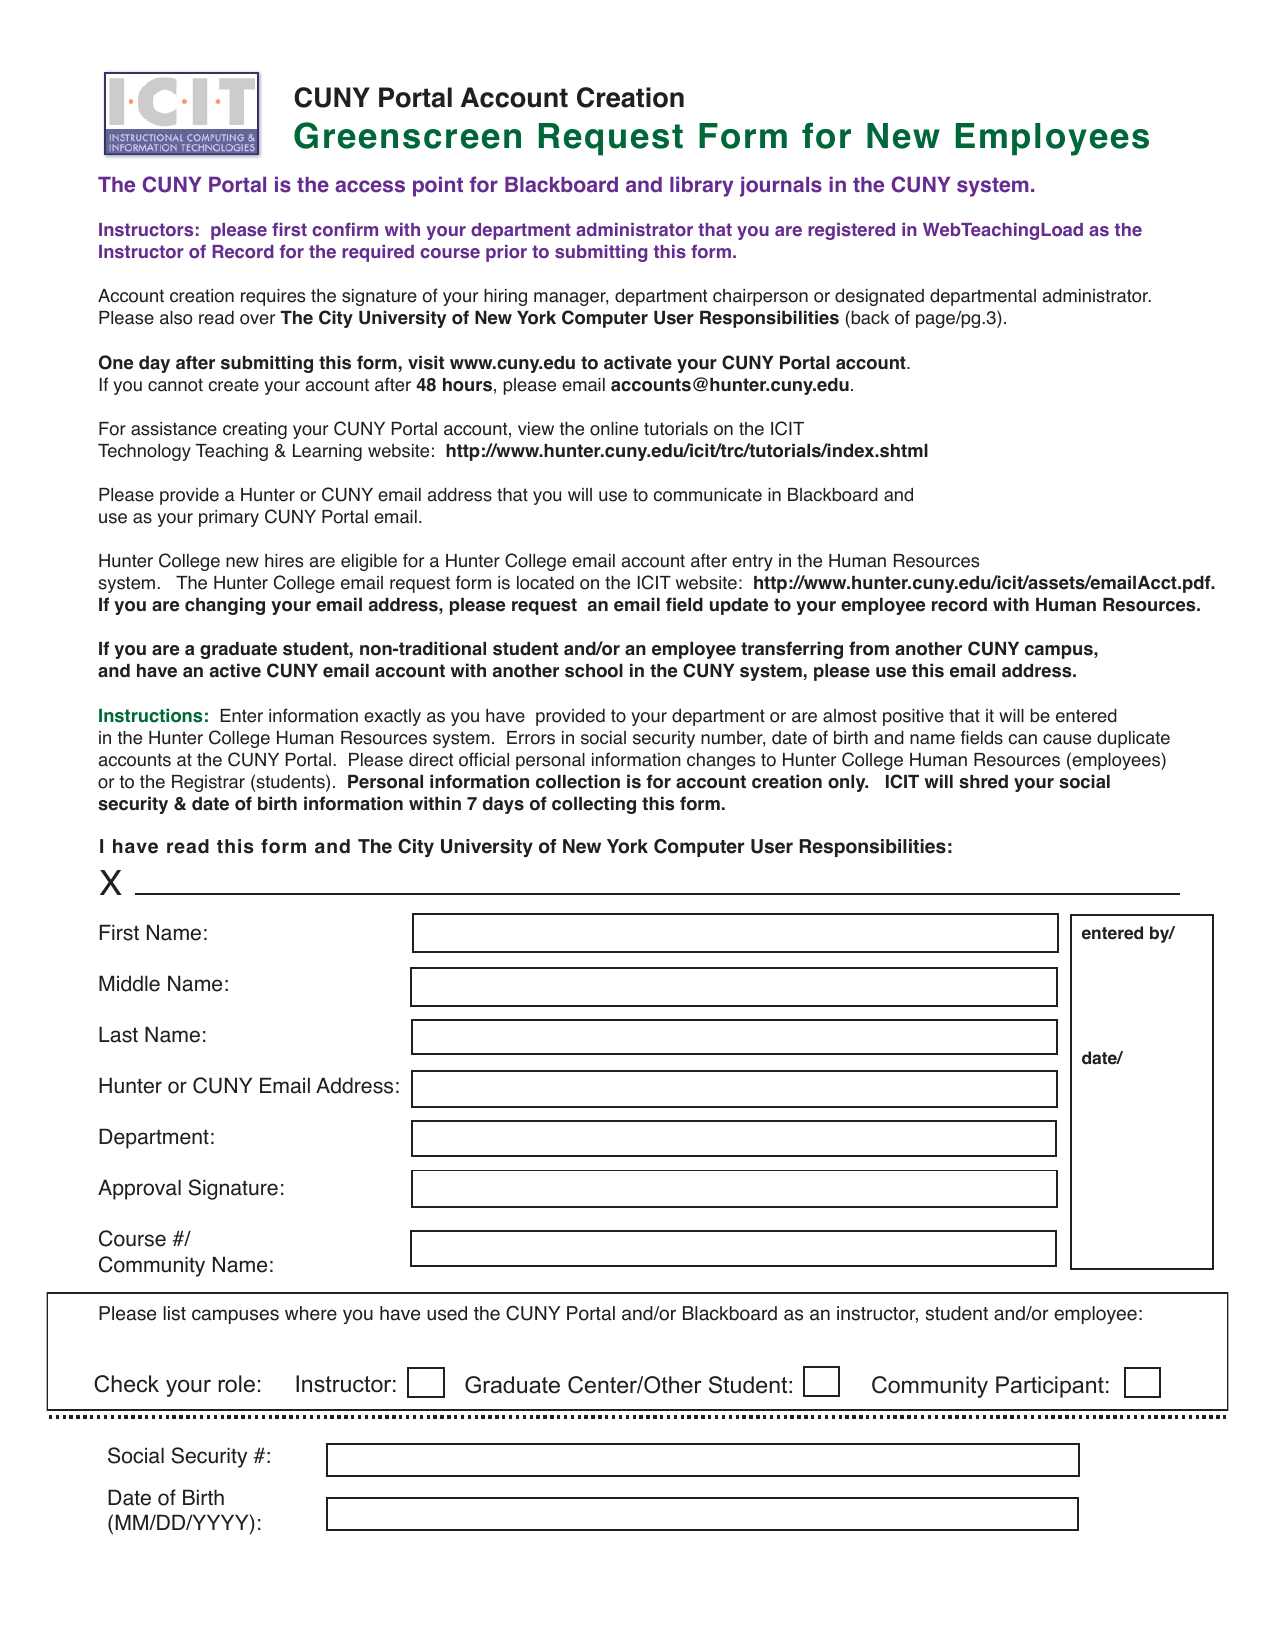 Greenscreen Request Form for New Employees CUNY Portal Account Creation